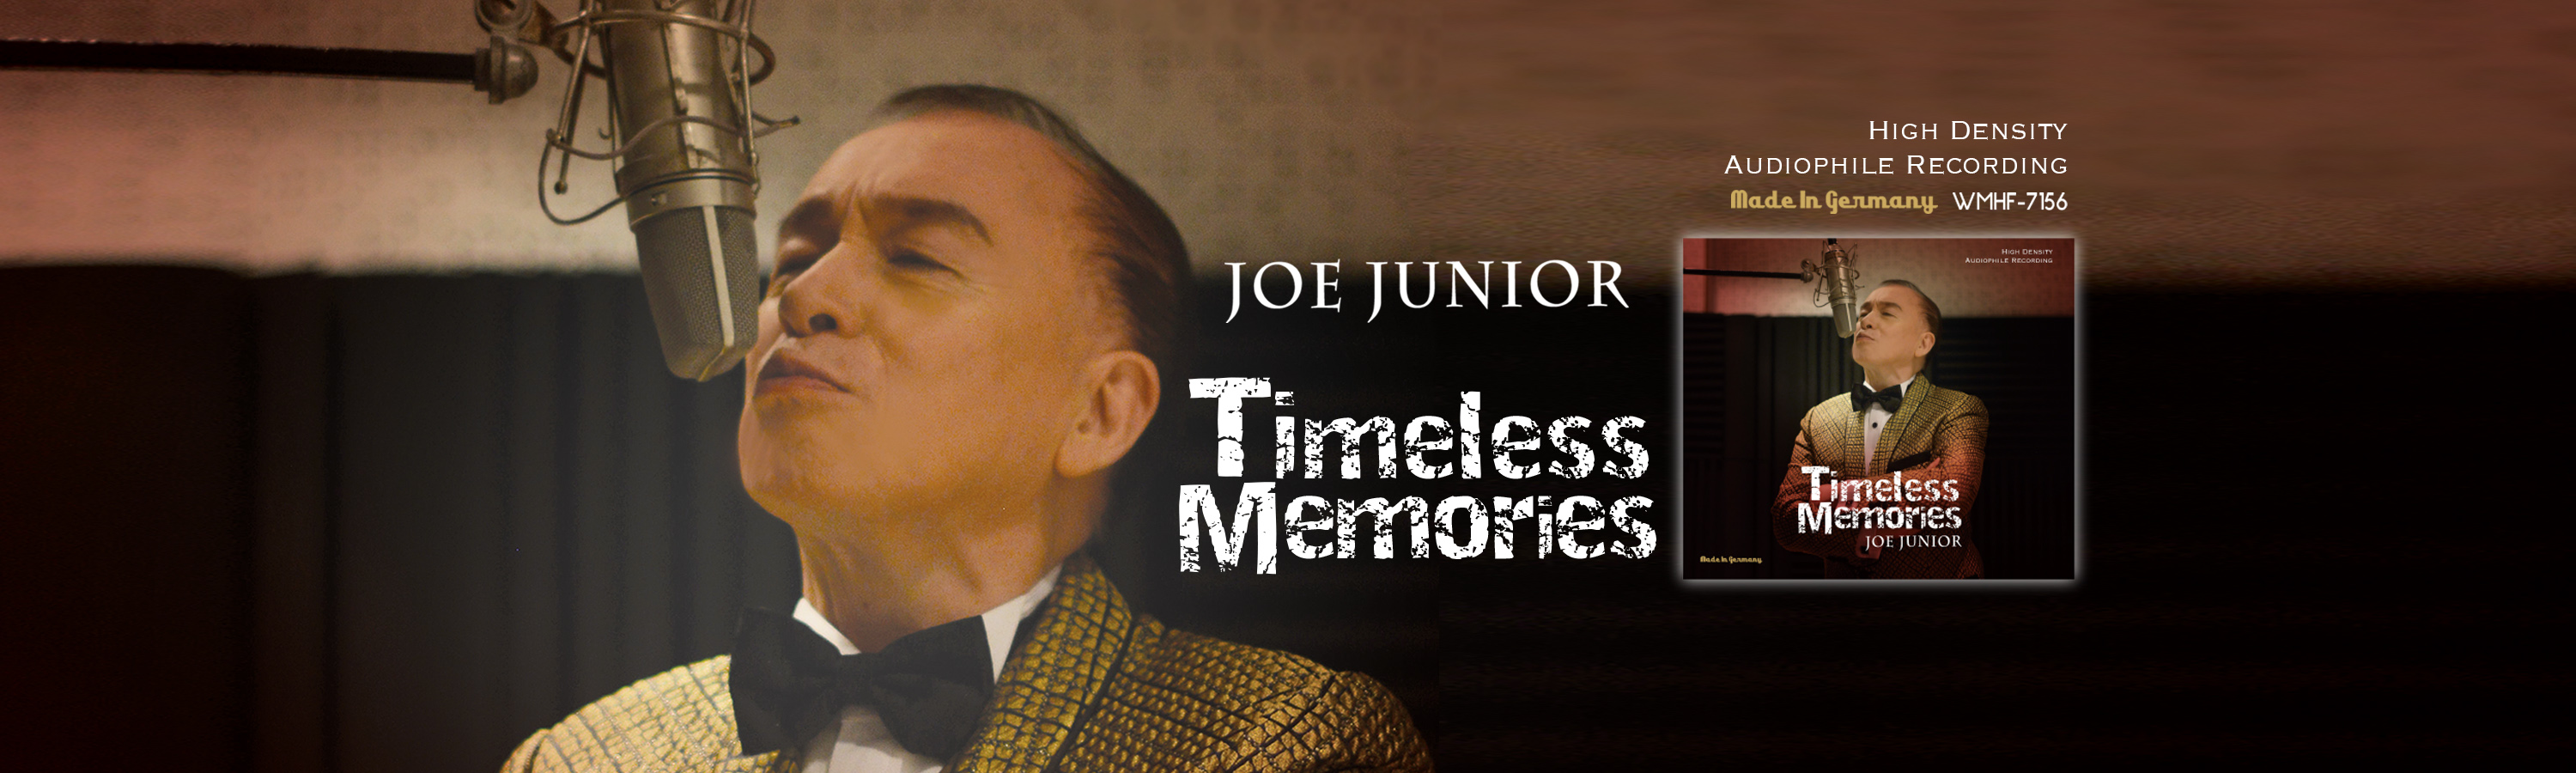 Joe Junior - Timeless Memories